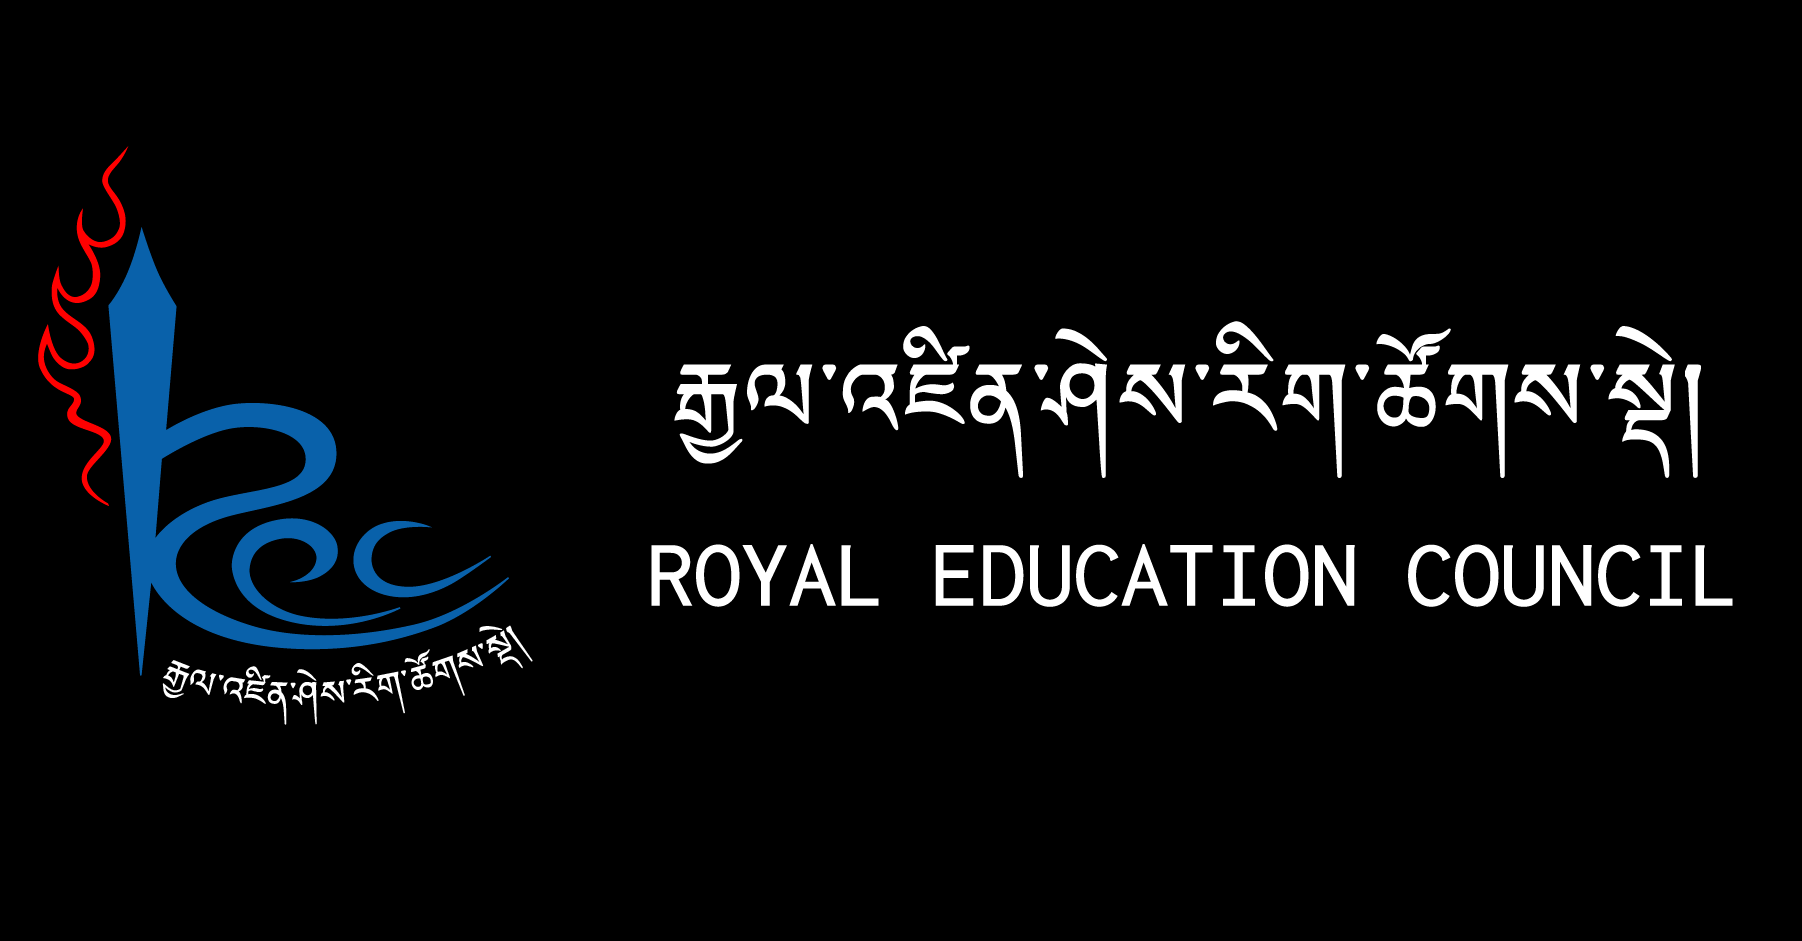 Royal Education Council